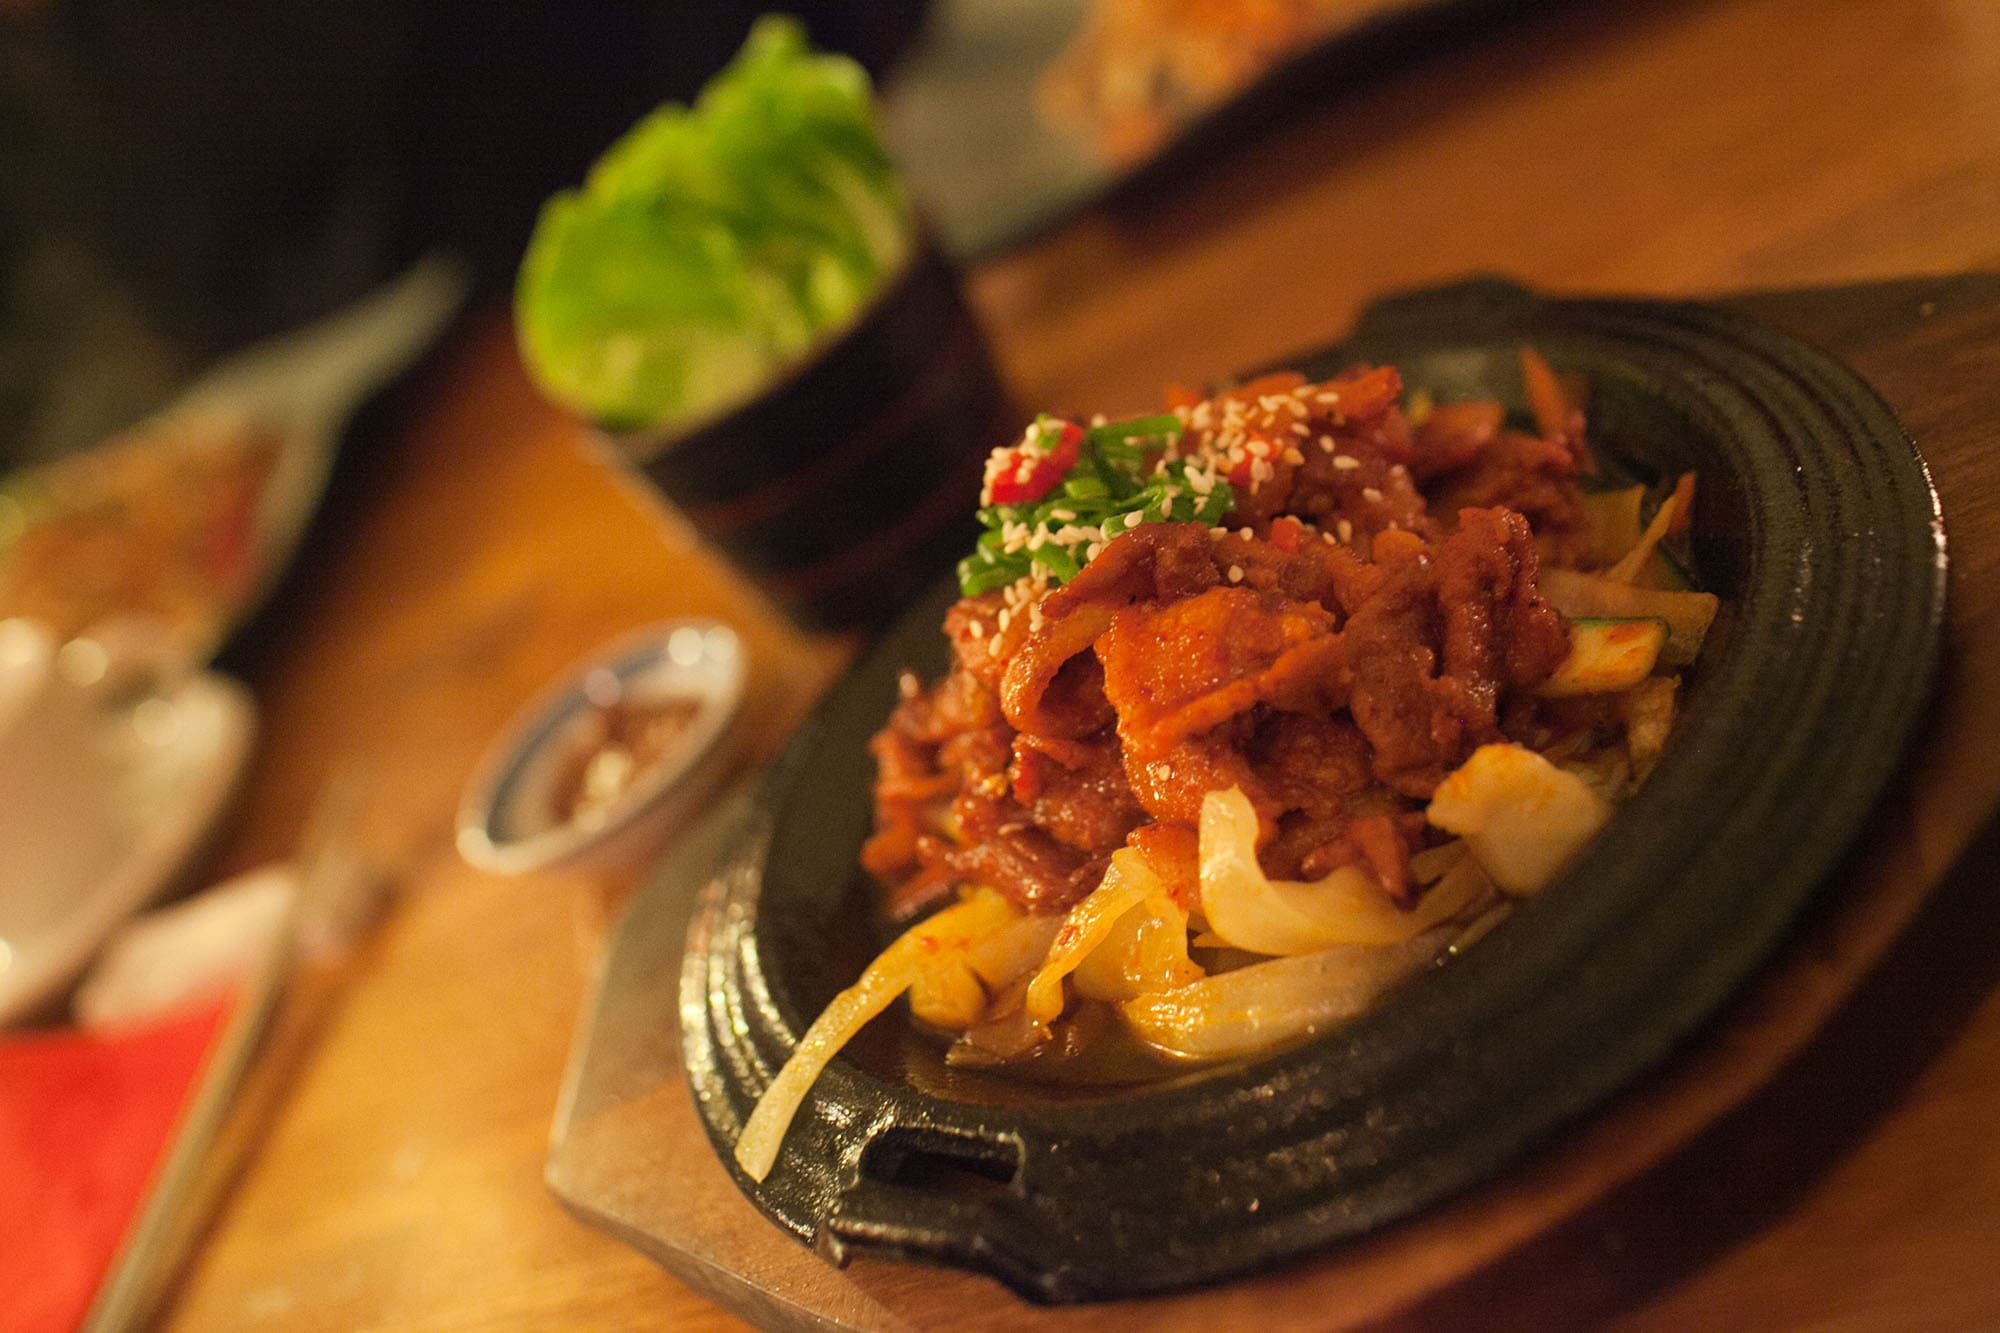 Korean Spicy Pork BBQ at Naru in London, England